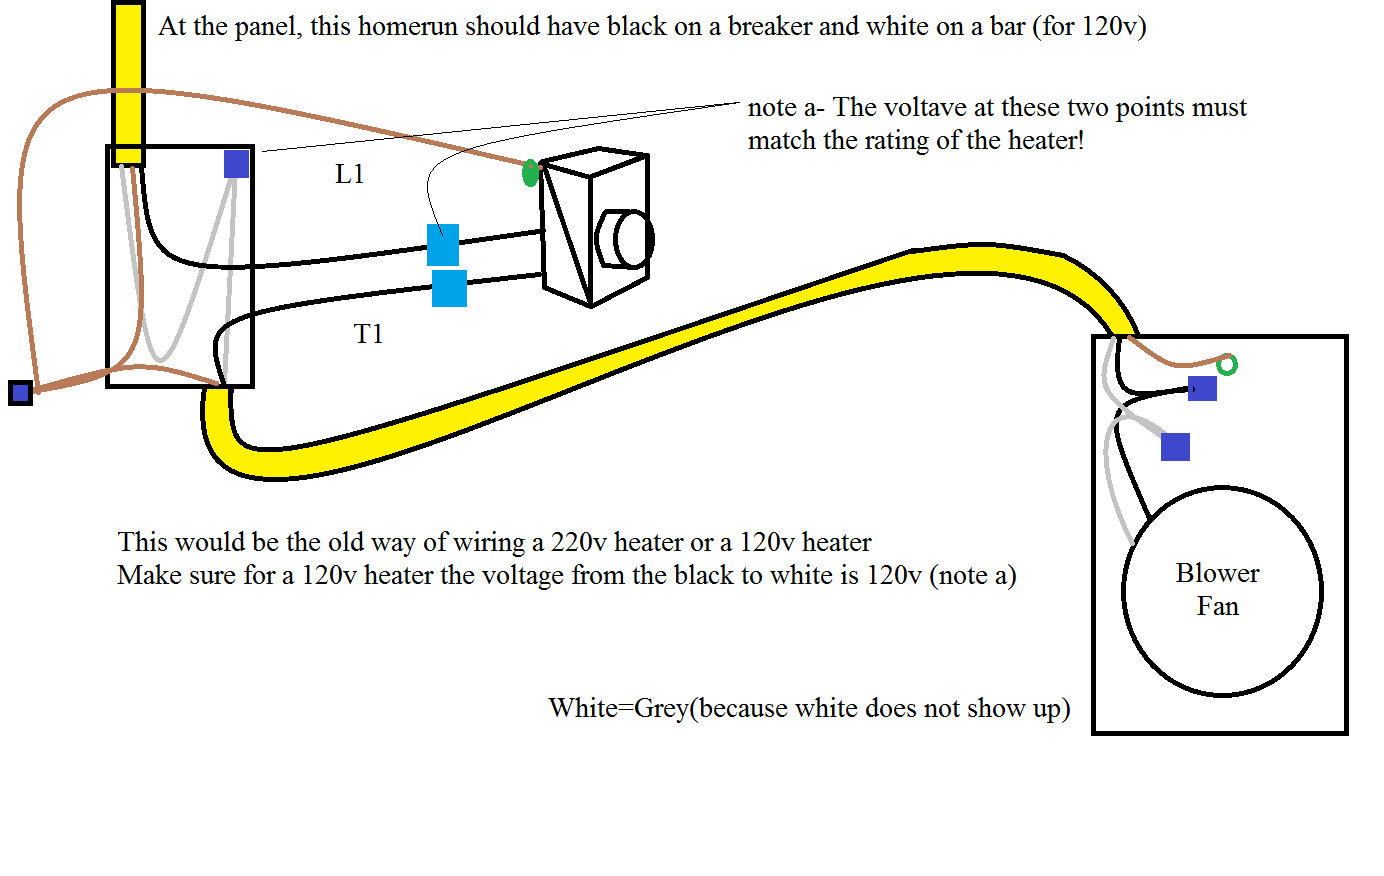 small resolution of a house wired prior to 2008 would have the white wire wire nutted through even if it was 220v heater system where a house wired after 2008 the white wire